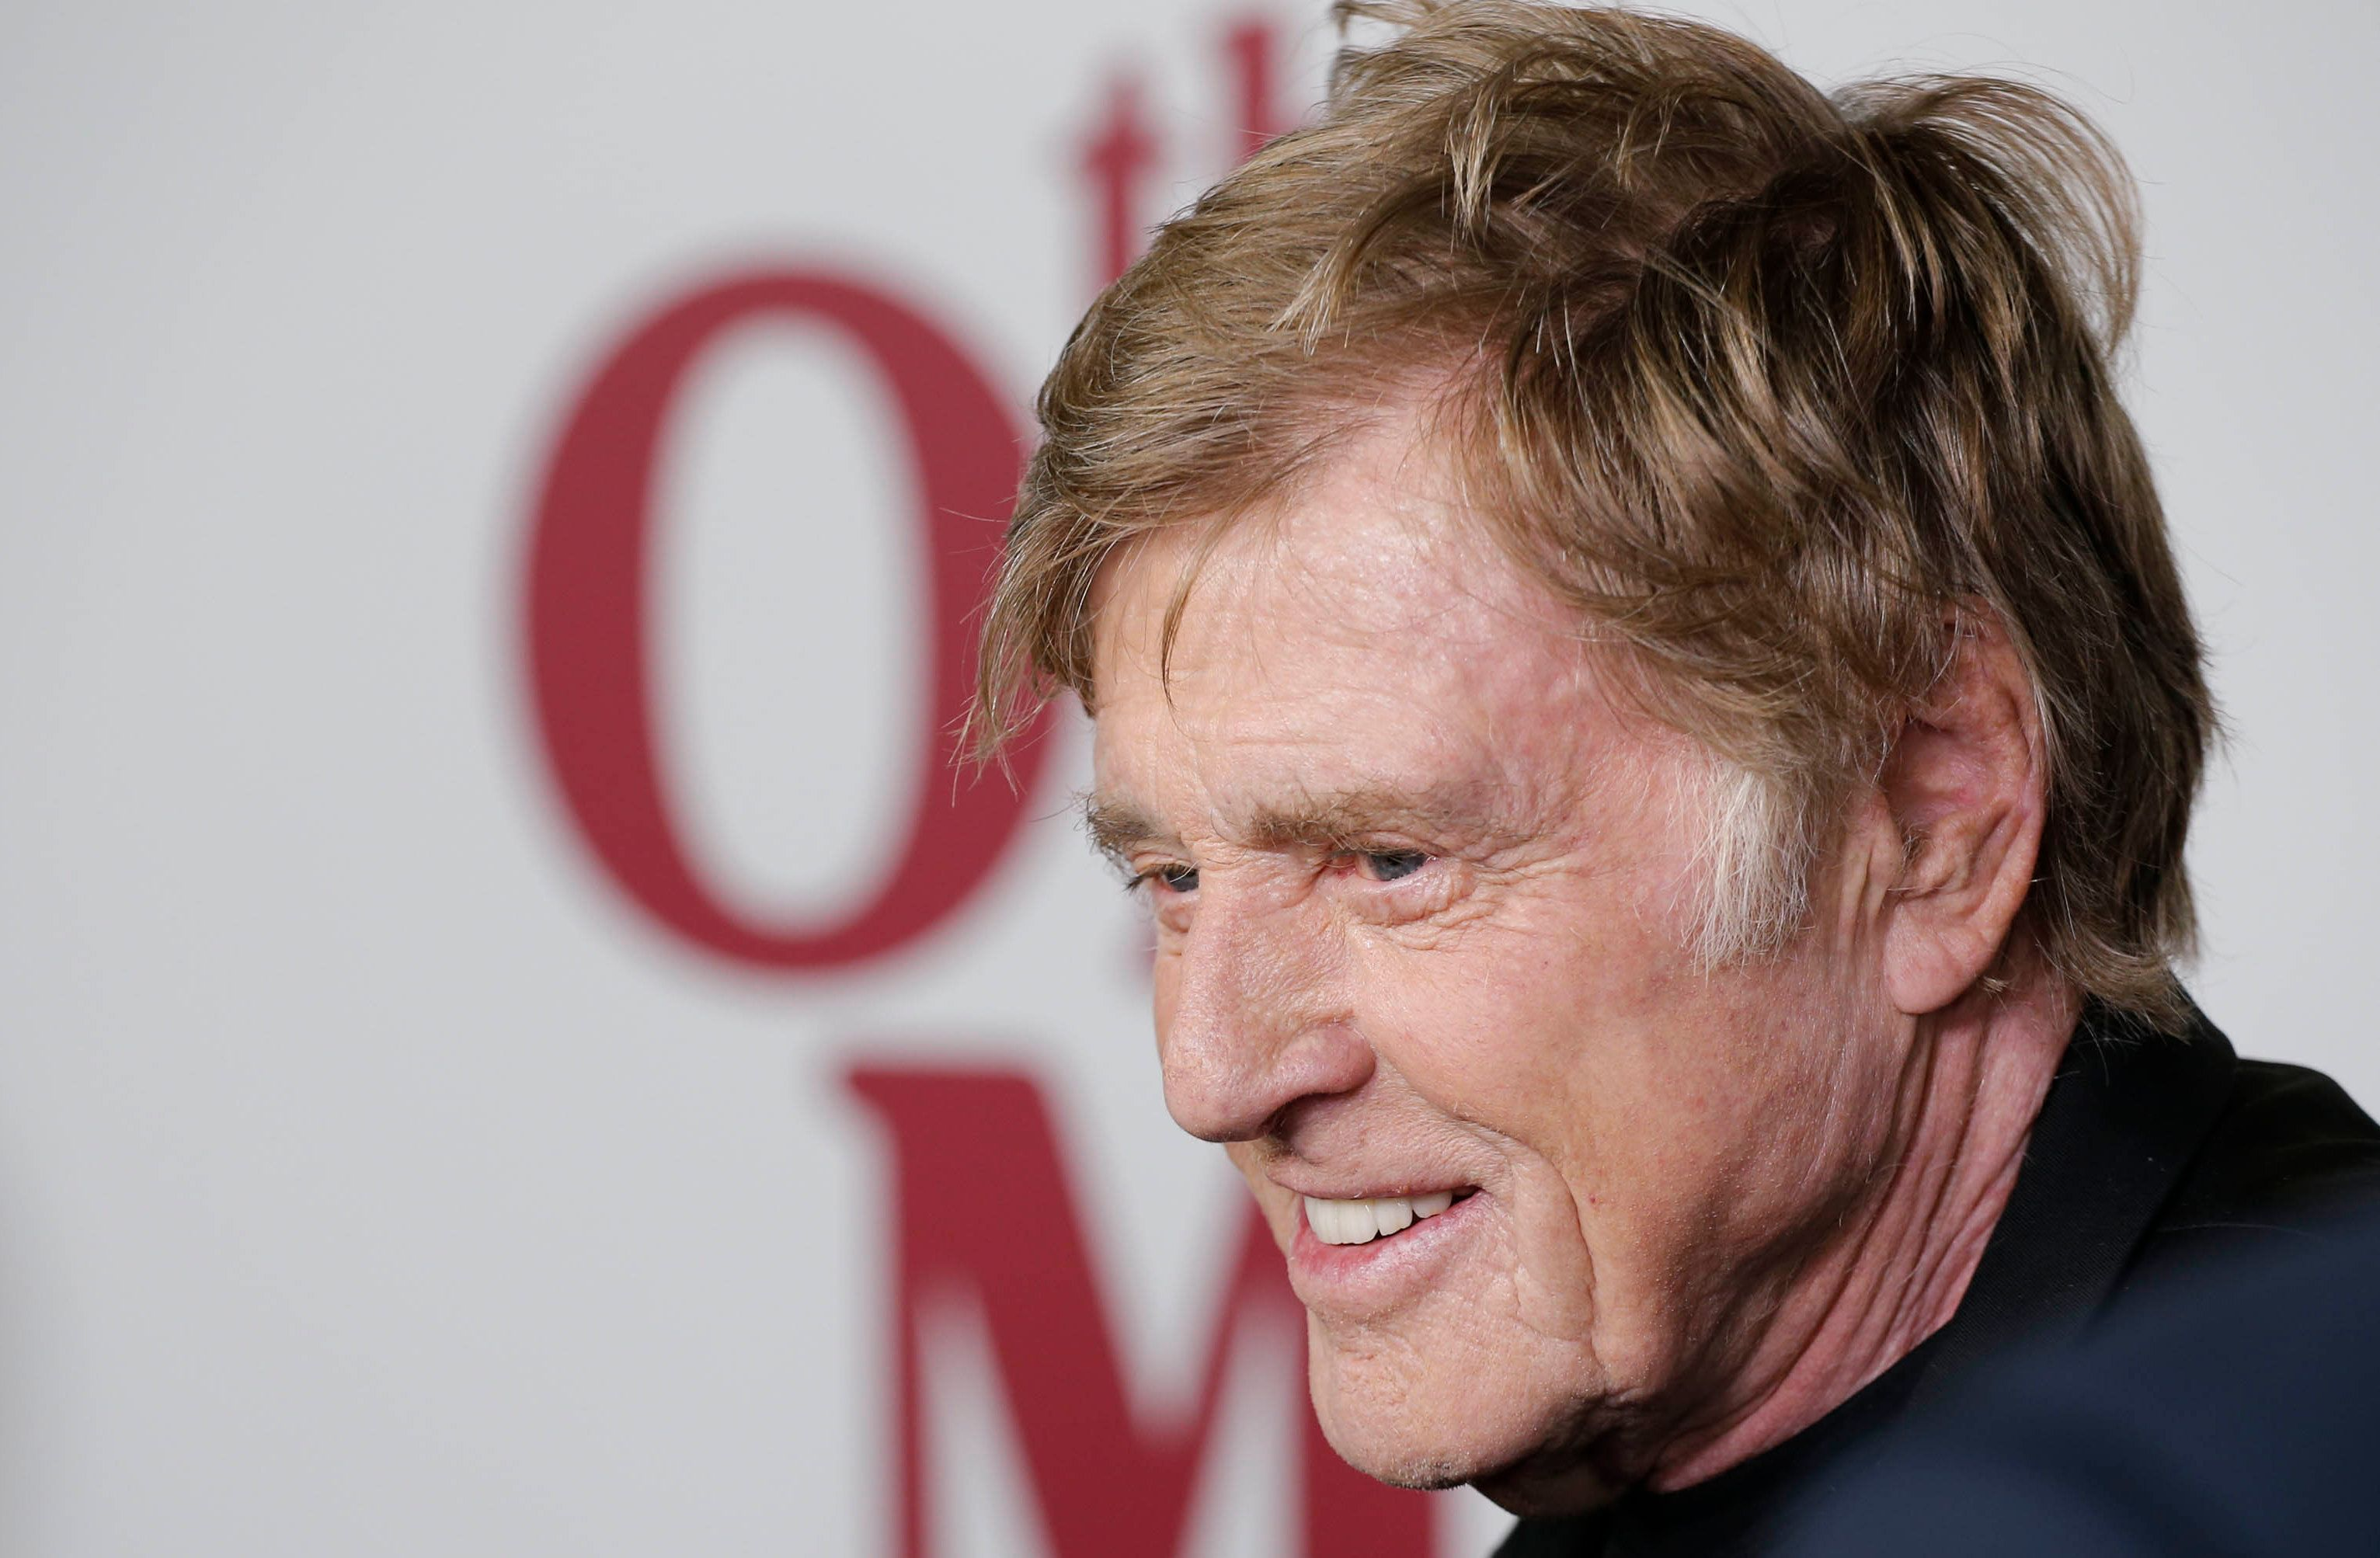 US actor Robert Redford attends the premiere of 'The old man and the gun' in New York City on September 20, 2018. (Photo by KENA BETANCUR / AFP)        (Photo credit should read KENA BETANCUR/AFP/Getty Images)